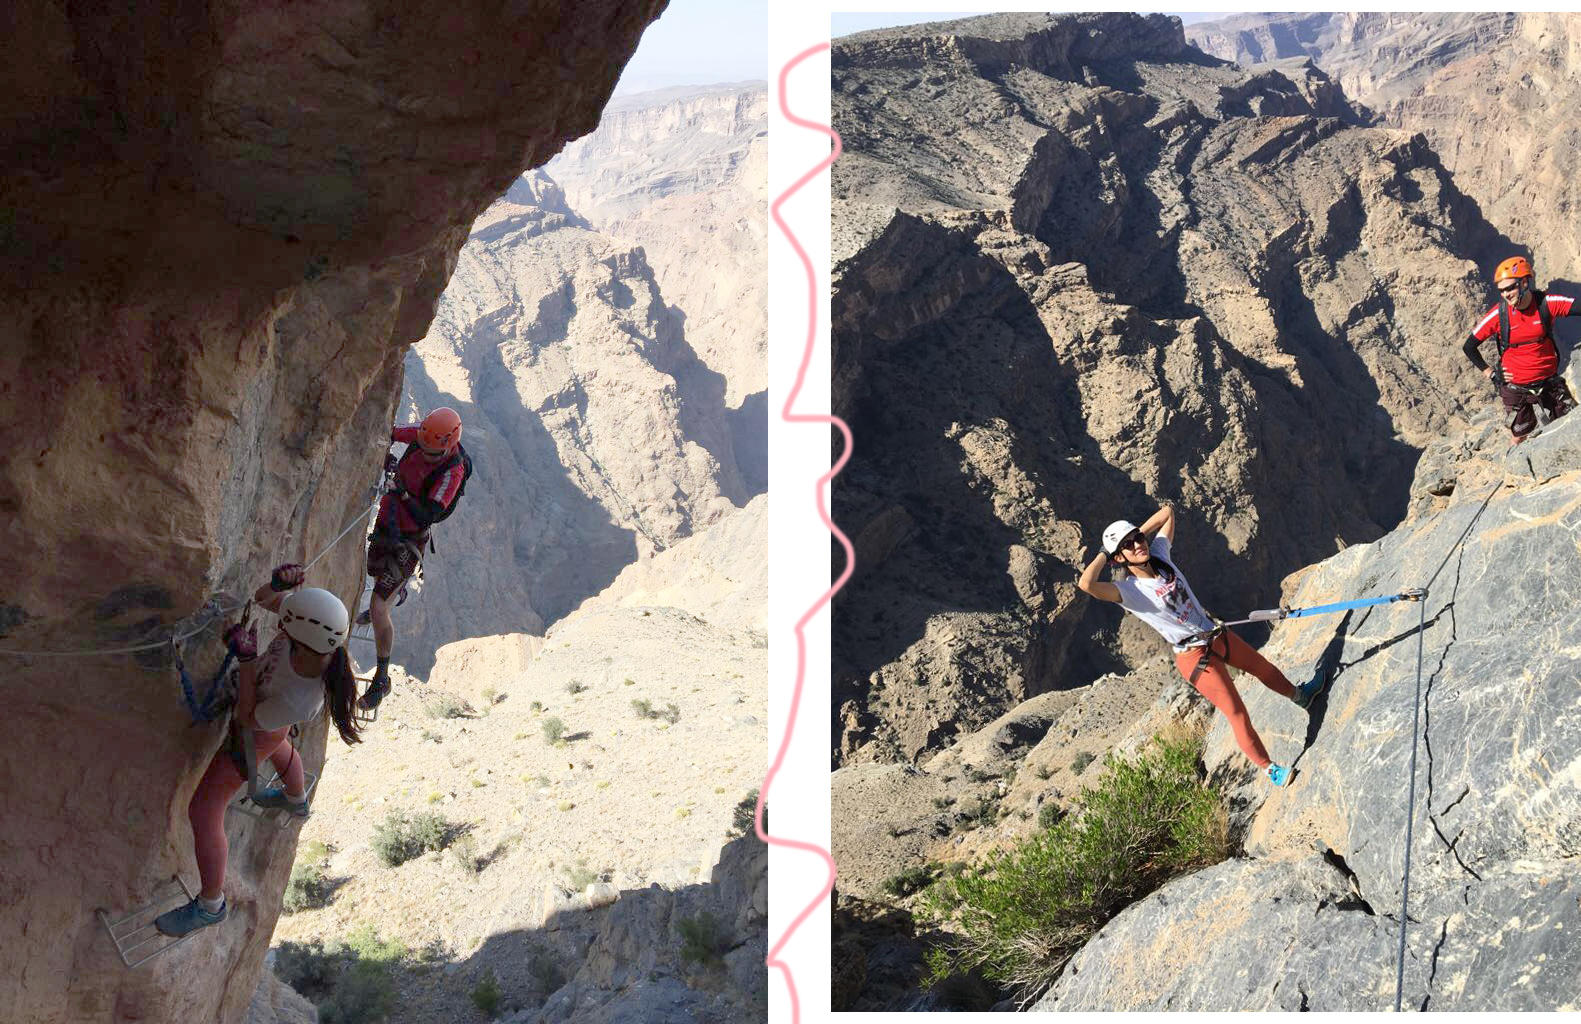 Euriental | luxury travel & style | Alila Jabal Akhdar via ferrata, Oman